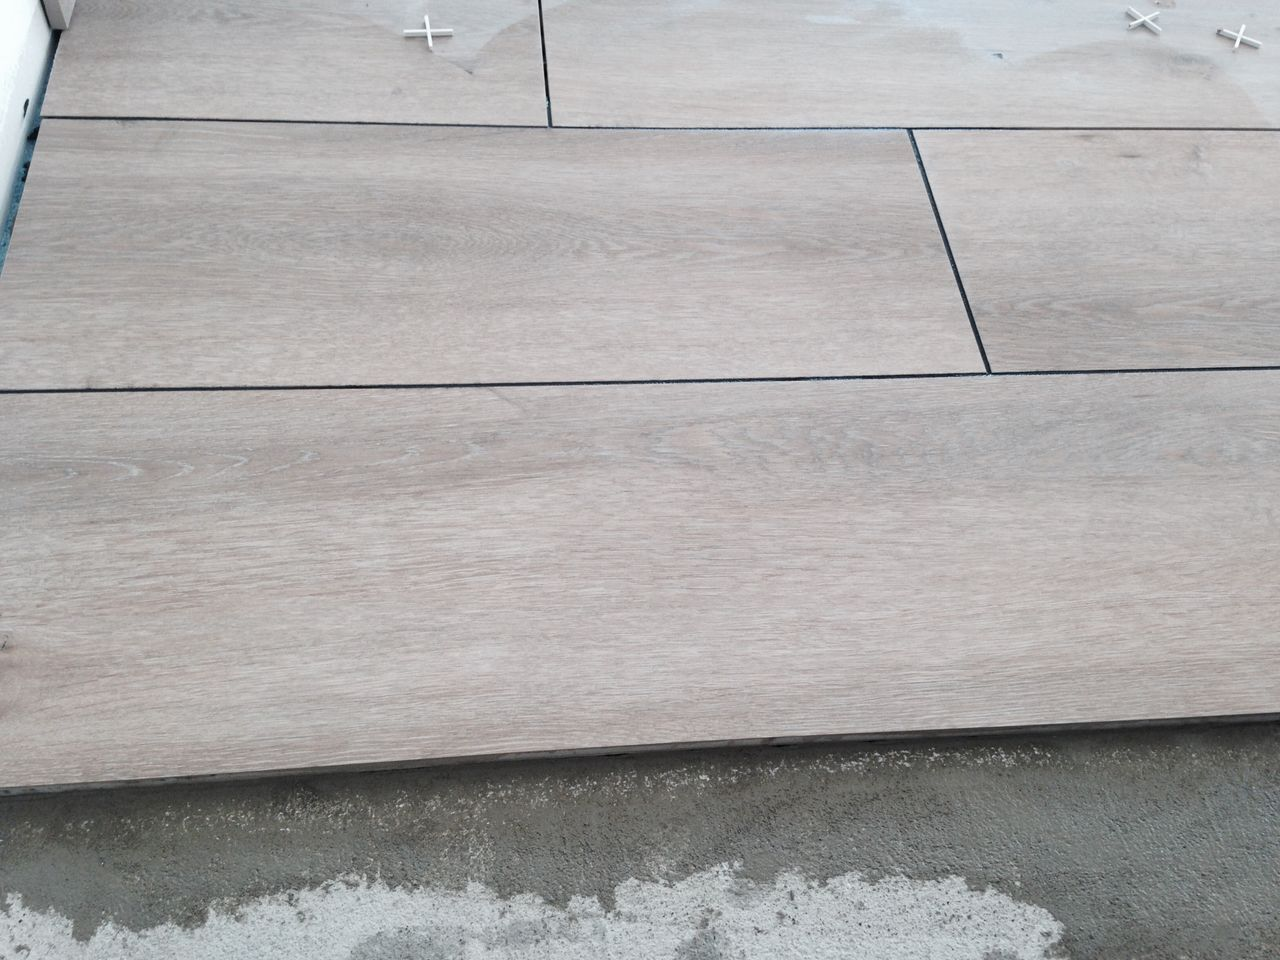 Quelle couleur de joints pour carrelage imitation parquet for Couleur joint carrelage gris